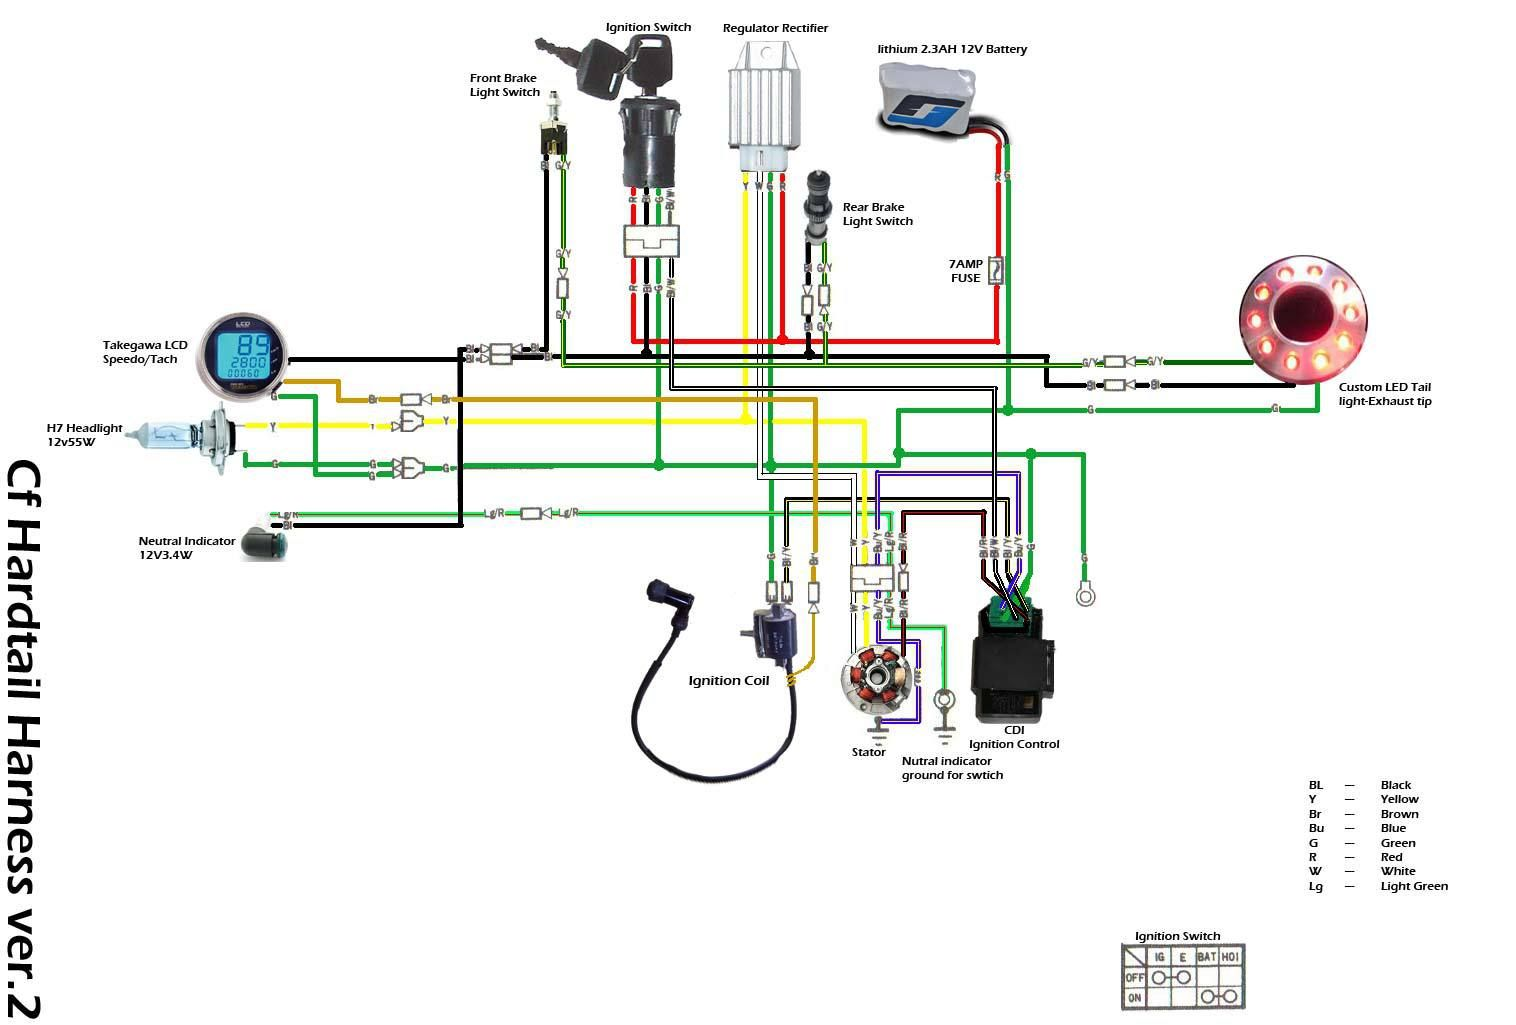 hight resolution of 110cc basic wiring setup atvconnection com atv enthusiast community within 110cc chinese atv diagram